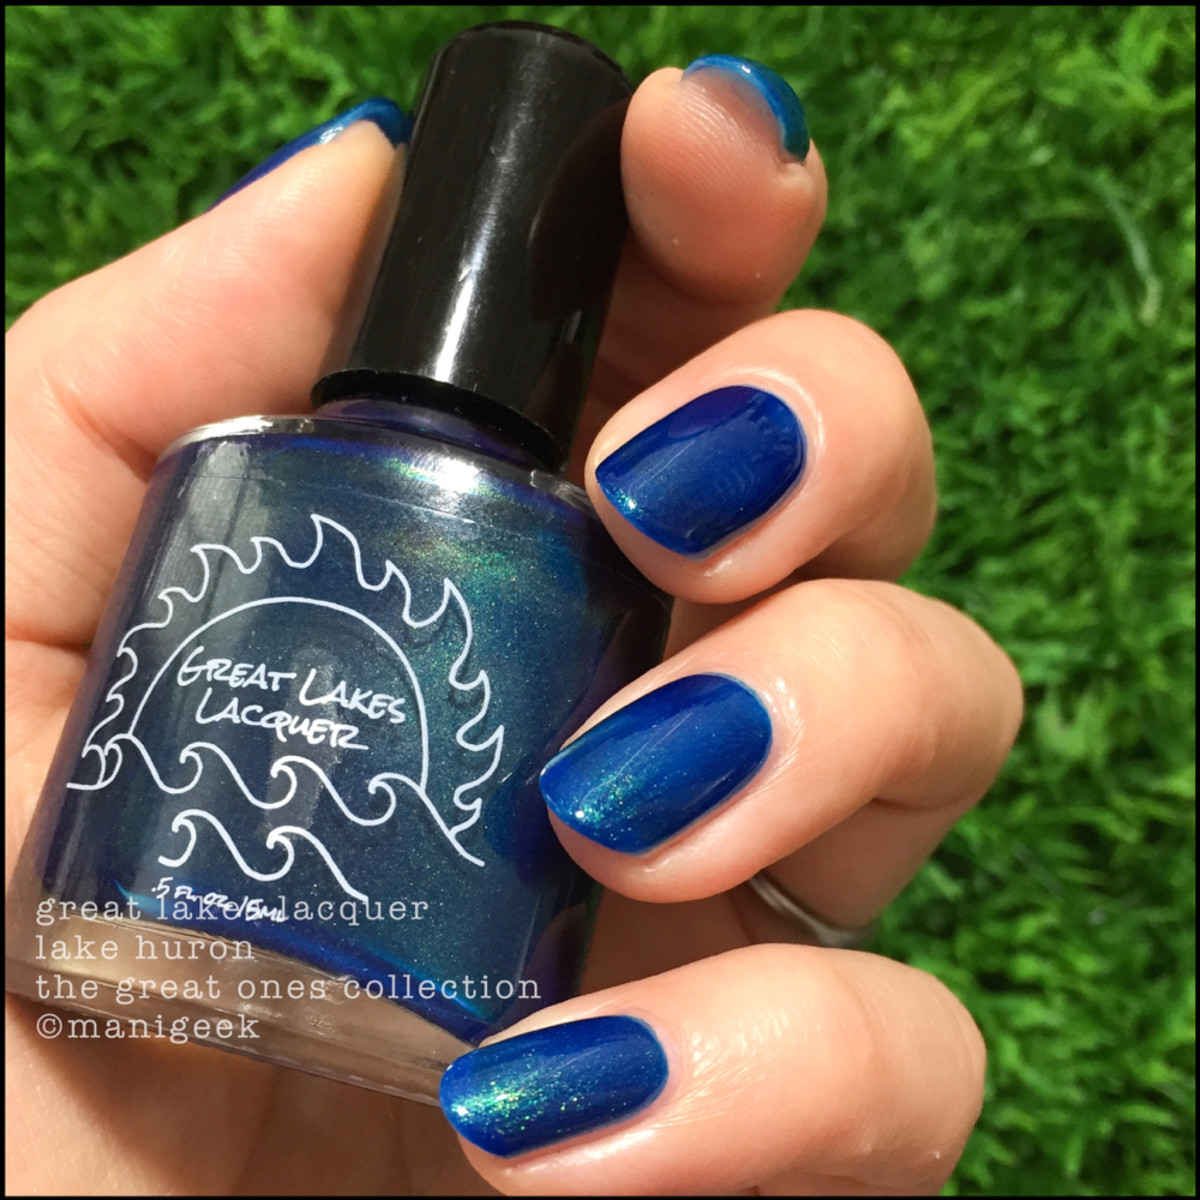 Great Lakes Lacquer_Lake Huron Swatches